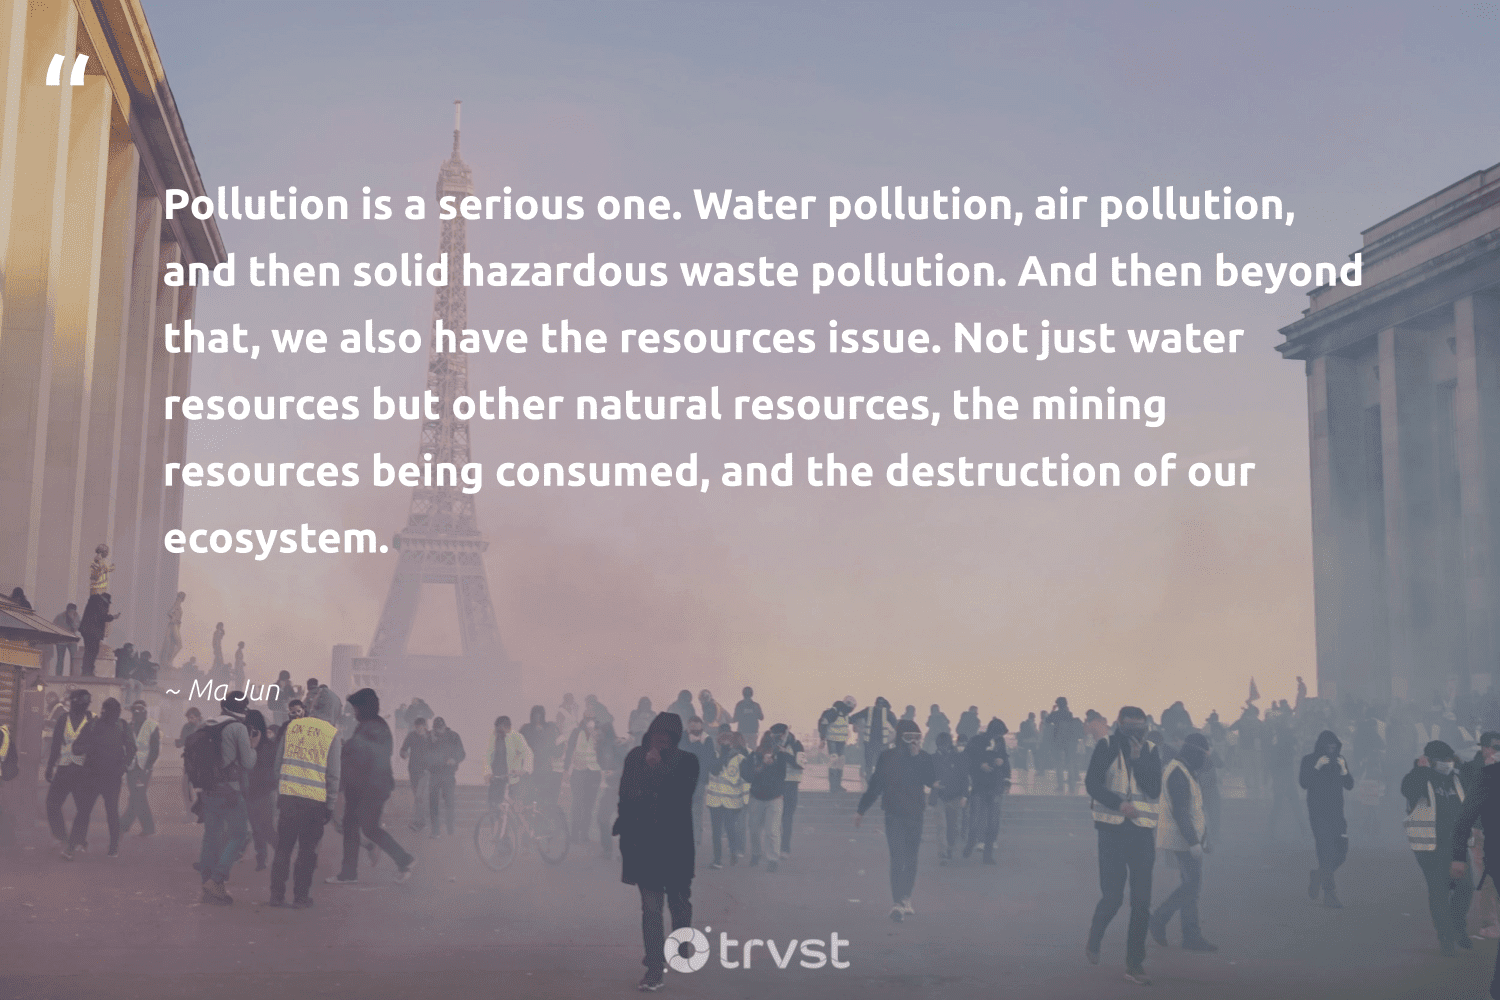 """""""Pollution is a serious one. Water pollution, air pollution, and then solid hazardous waste pollution. And then beyond that, we also have the resources issue. Not just water resources but other natural resources, the mining resources being consumed, and the destruction of our ecosystem.""""  - Ma Jun #trvst #quotes #pollute #waste #water #pollution #natural #toxic #giveback #earth #planetearthfirst #sustainable"""